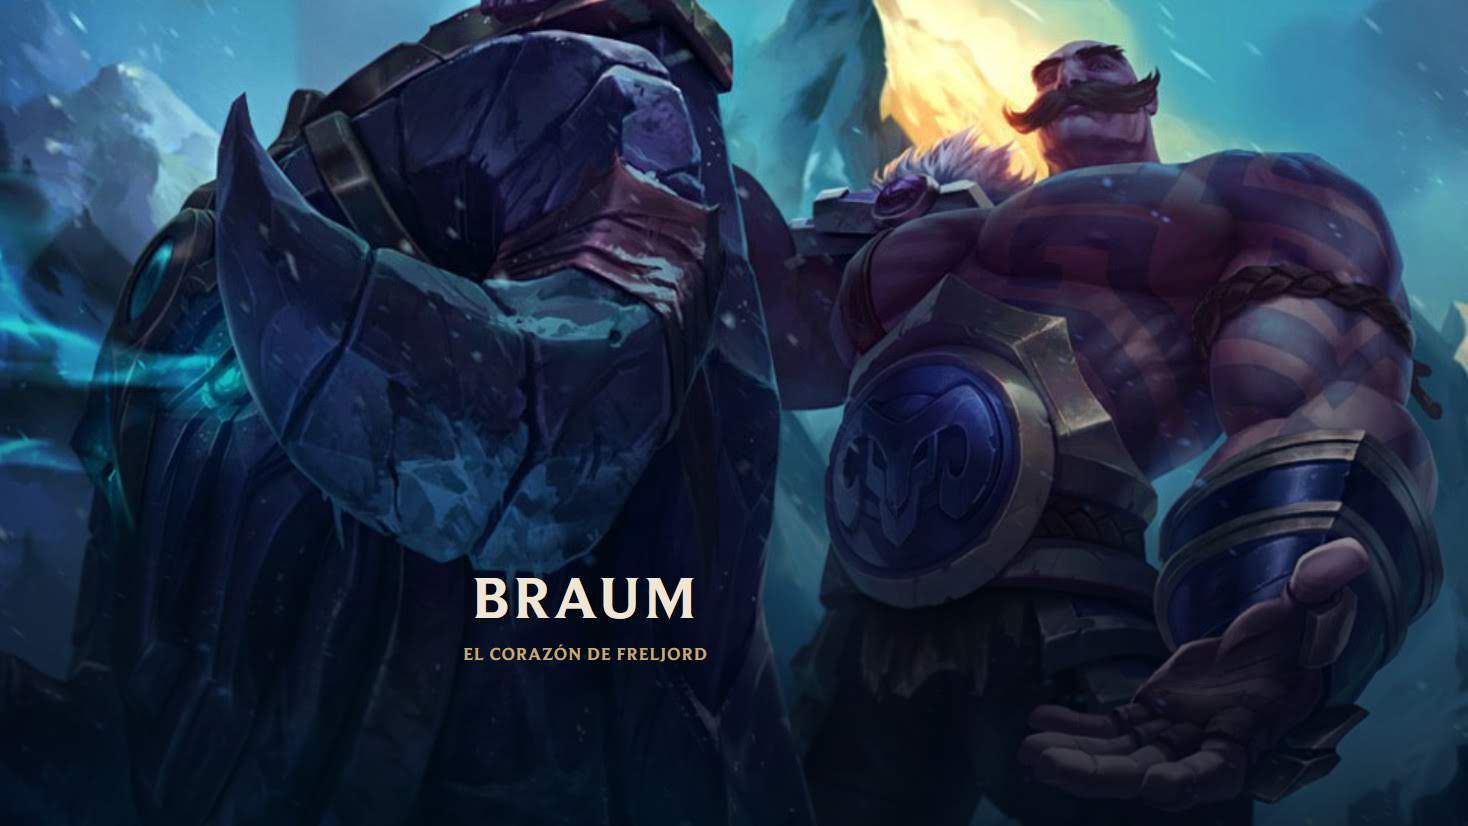 Braum 60 Campeones Del Universo De League Of Legends Background Wallpapers Hd 2019 League Of Legends Braum S Defensor